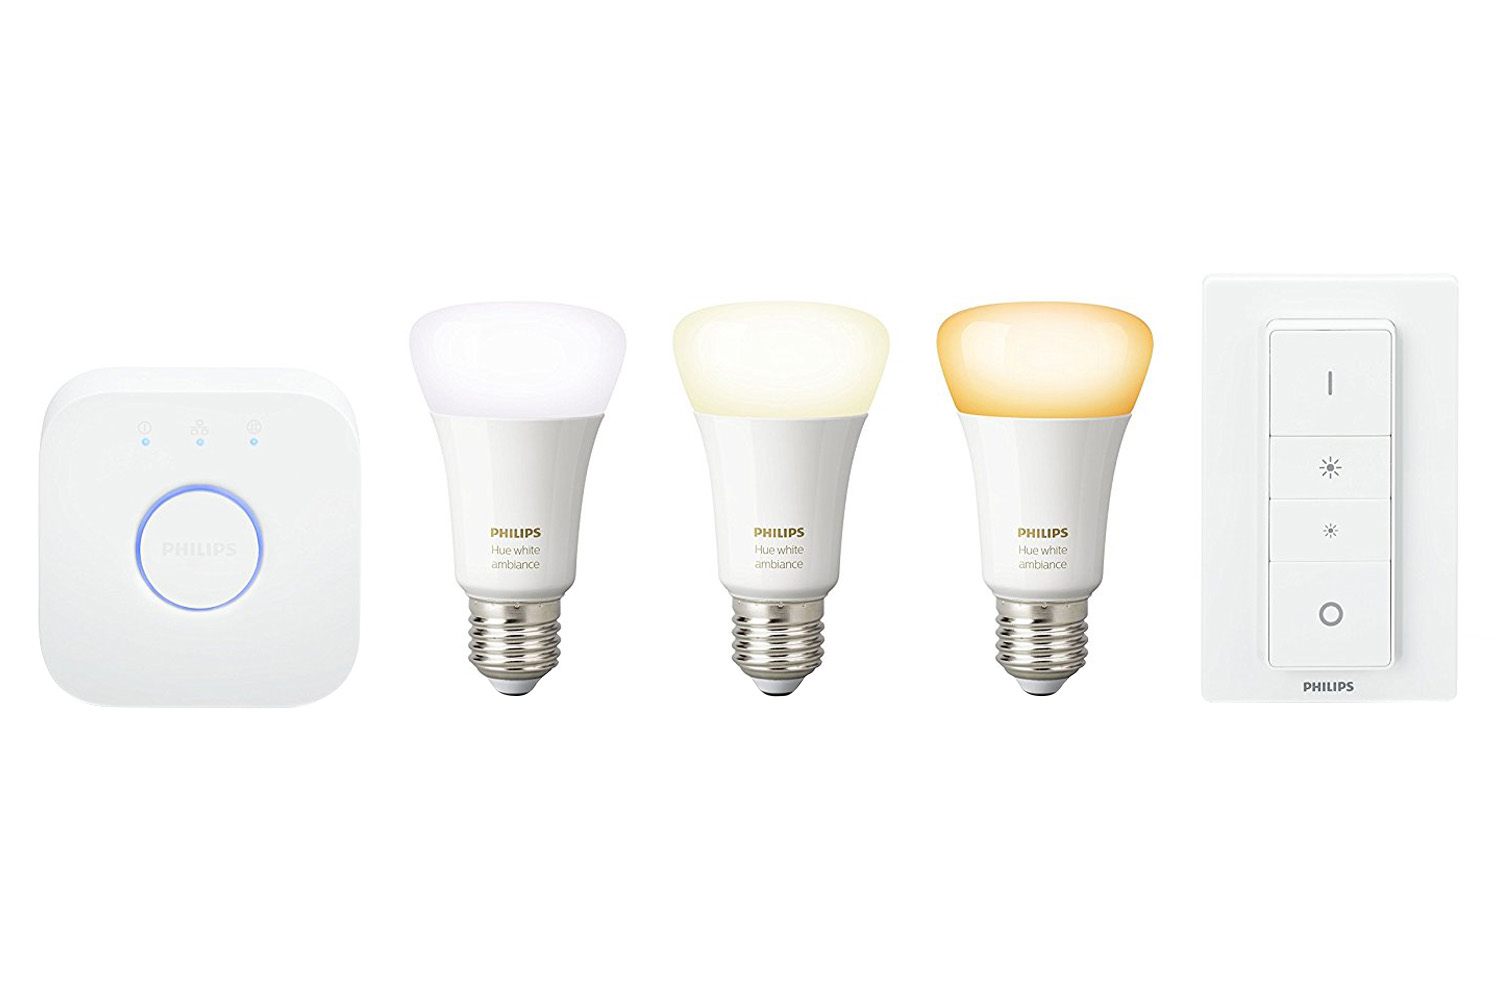 Philips Hue Starter Kit E27 Philips Hue White Ambiance E27 Starter Kit